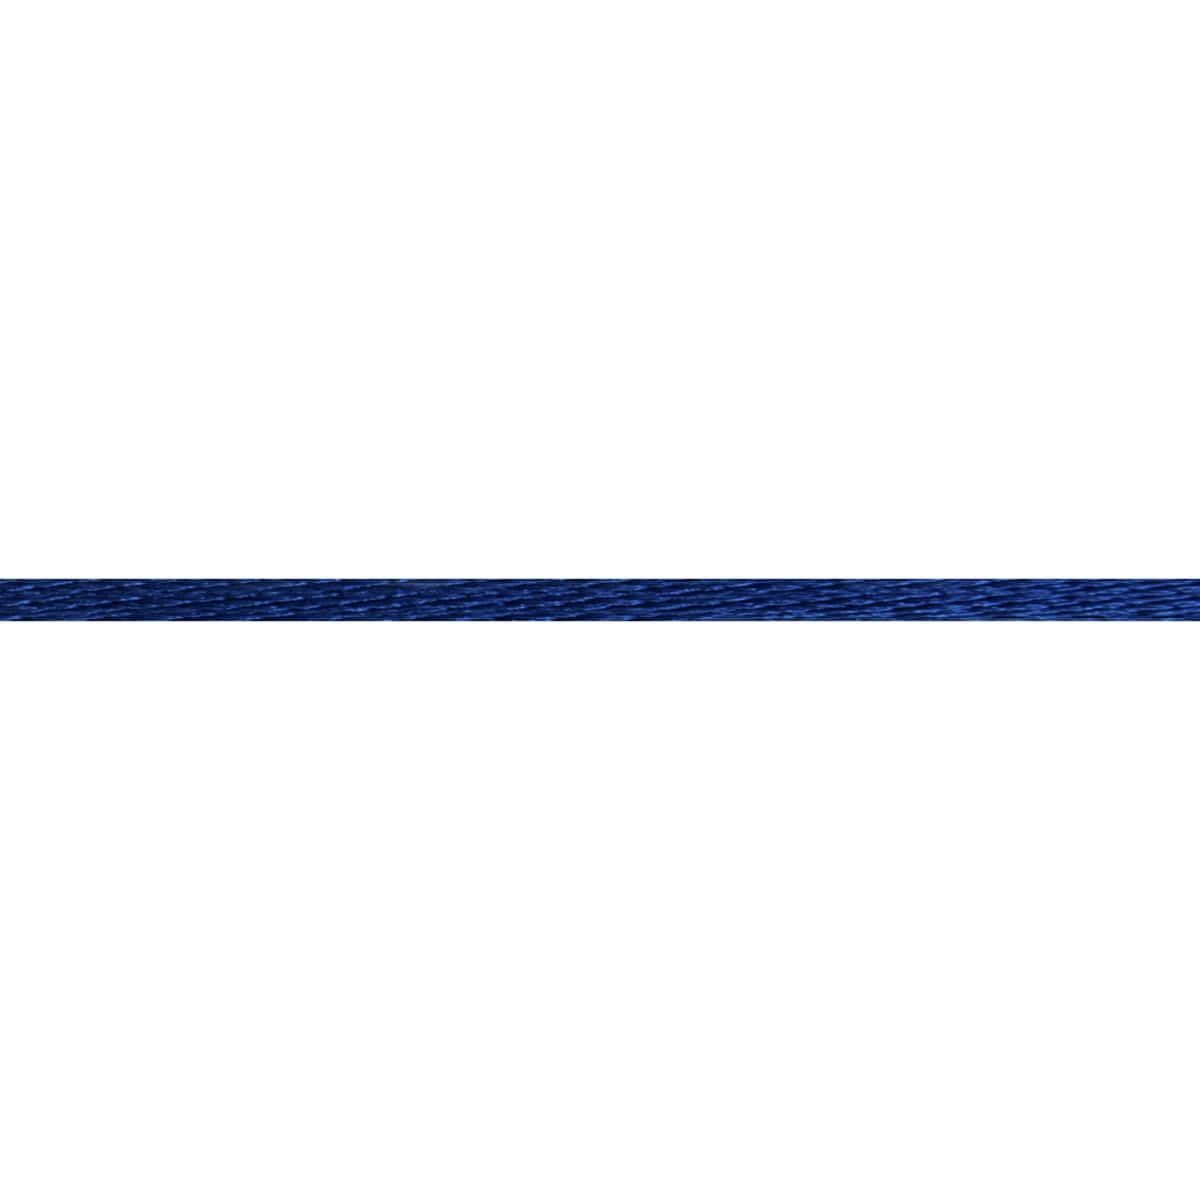 Berisfords Essentials - Rope - 2mm Wide - Navy